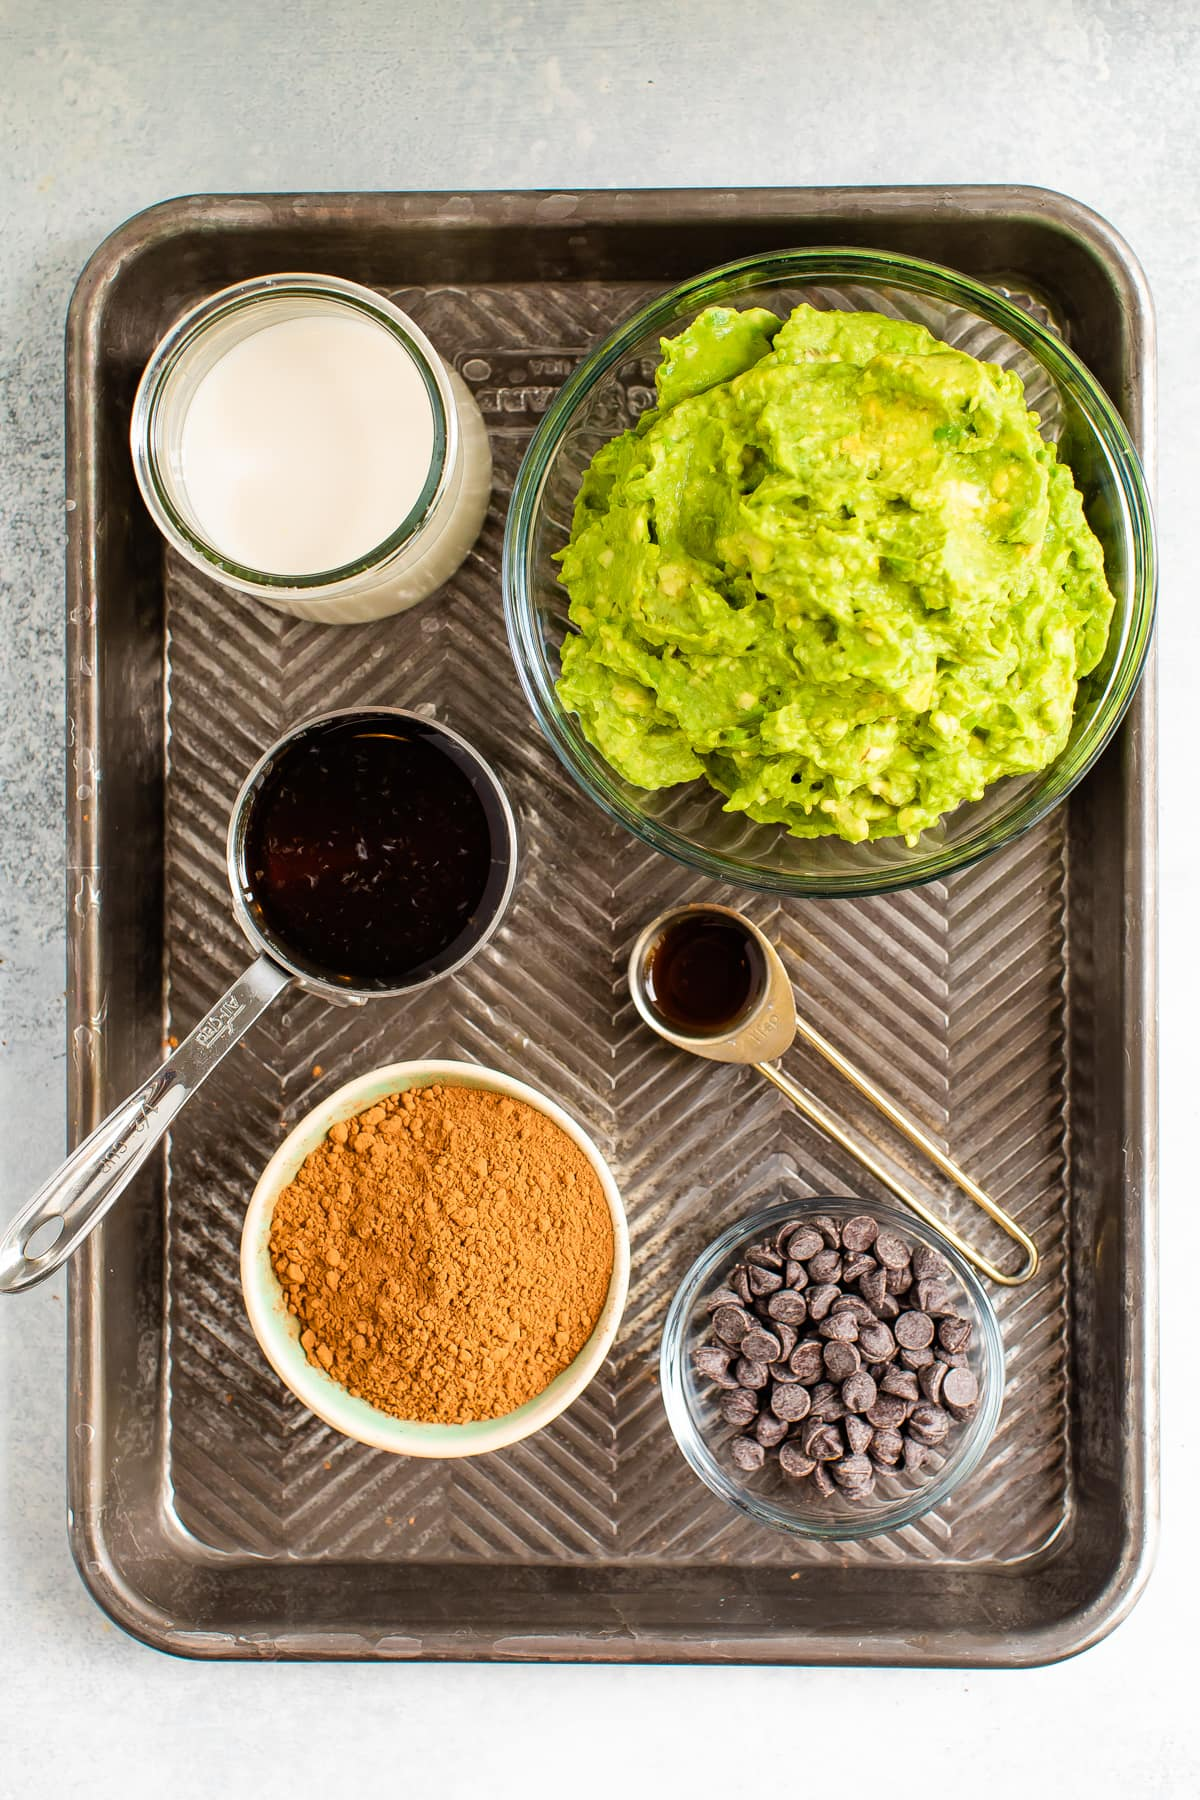 Ingredients for avocado pudding on a tray - almond milk, maple syrup, cocoa powder, avocado, vanilla and chocolate chips